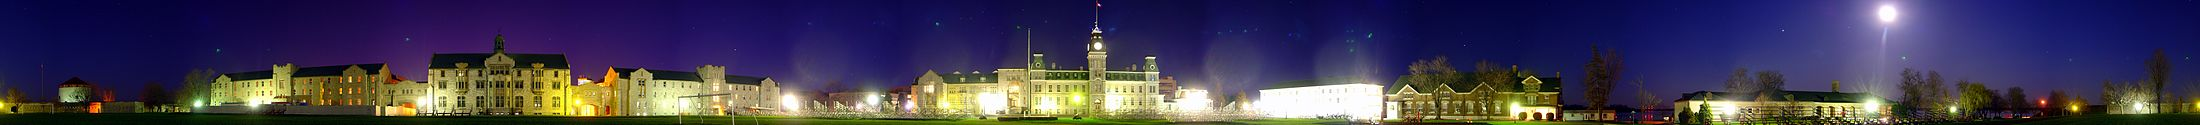 A 260-degree photo of the Royal Military College of Canada in Kingston, Ontario, on 4 May 2007. Seen is a green landscape during the night, featuring buildings made of white stone and red brick. The night sky is dark blue and purple, with the moon shining bright on the right side of the image. Photo credit: Martin St-Amant (User:S23678)